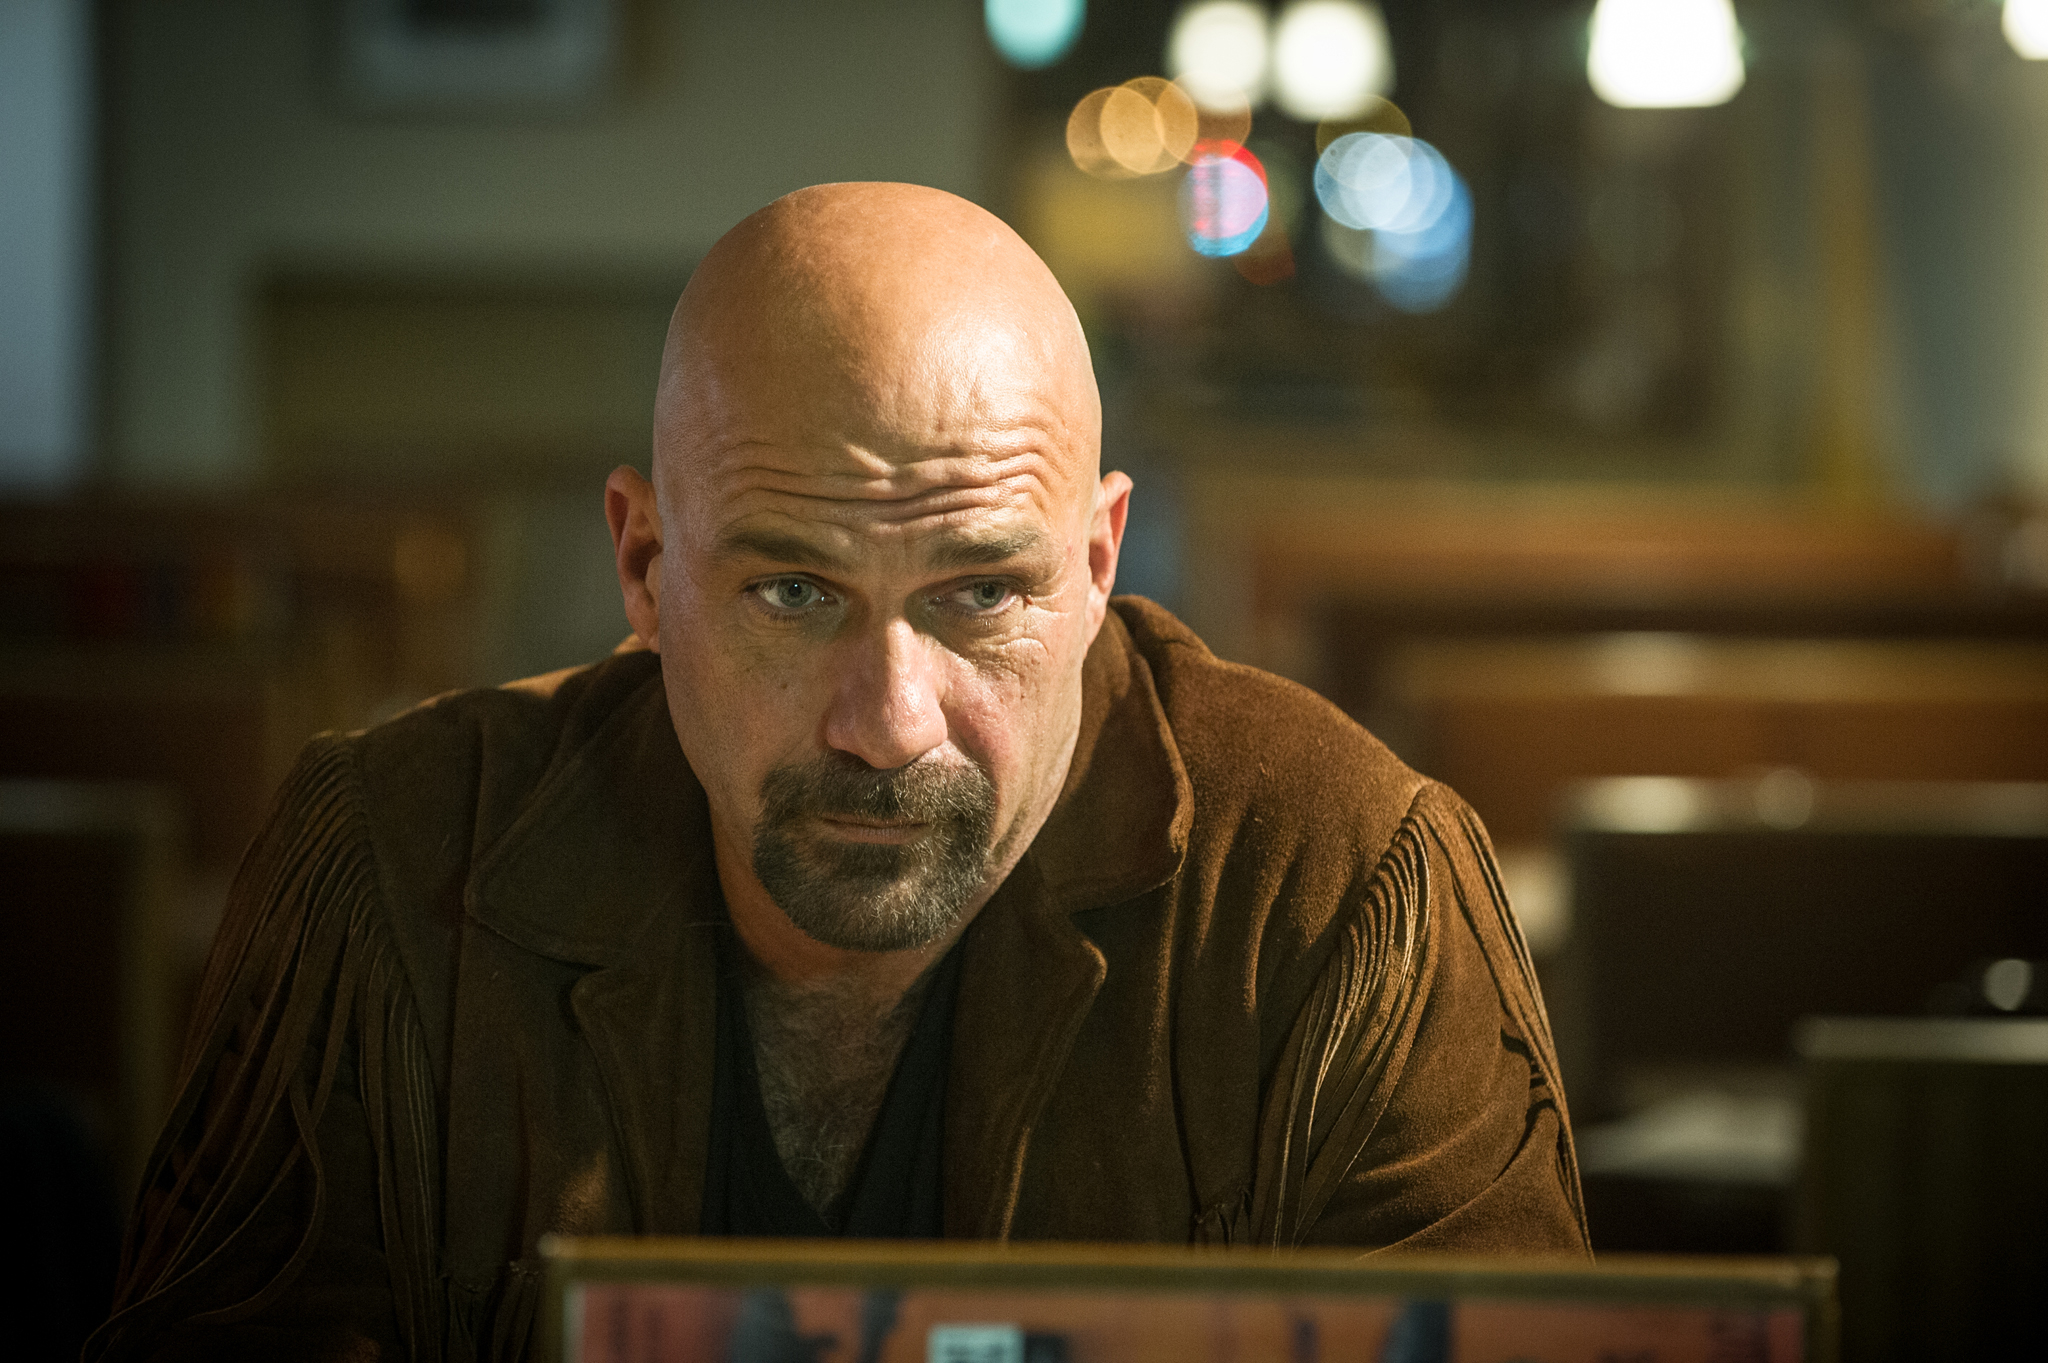 kevin gage (actor)